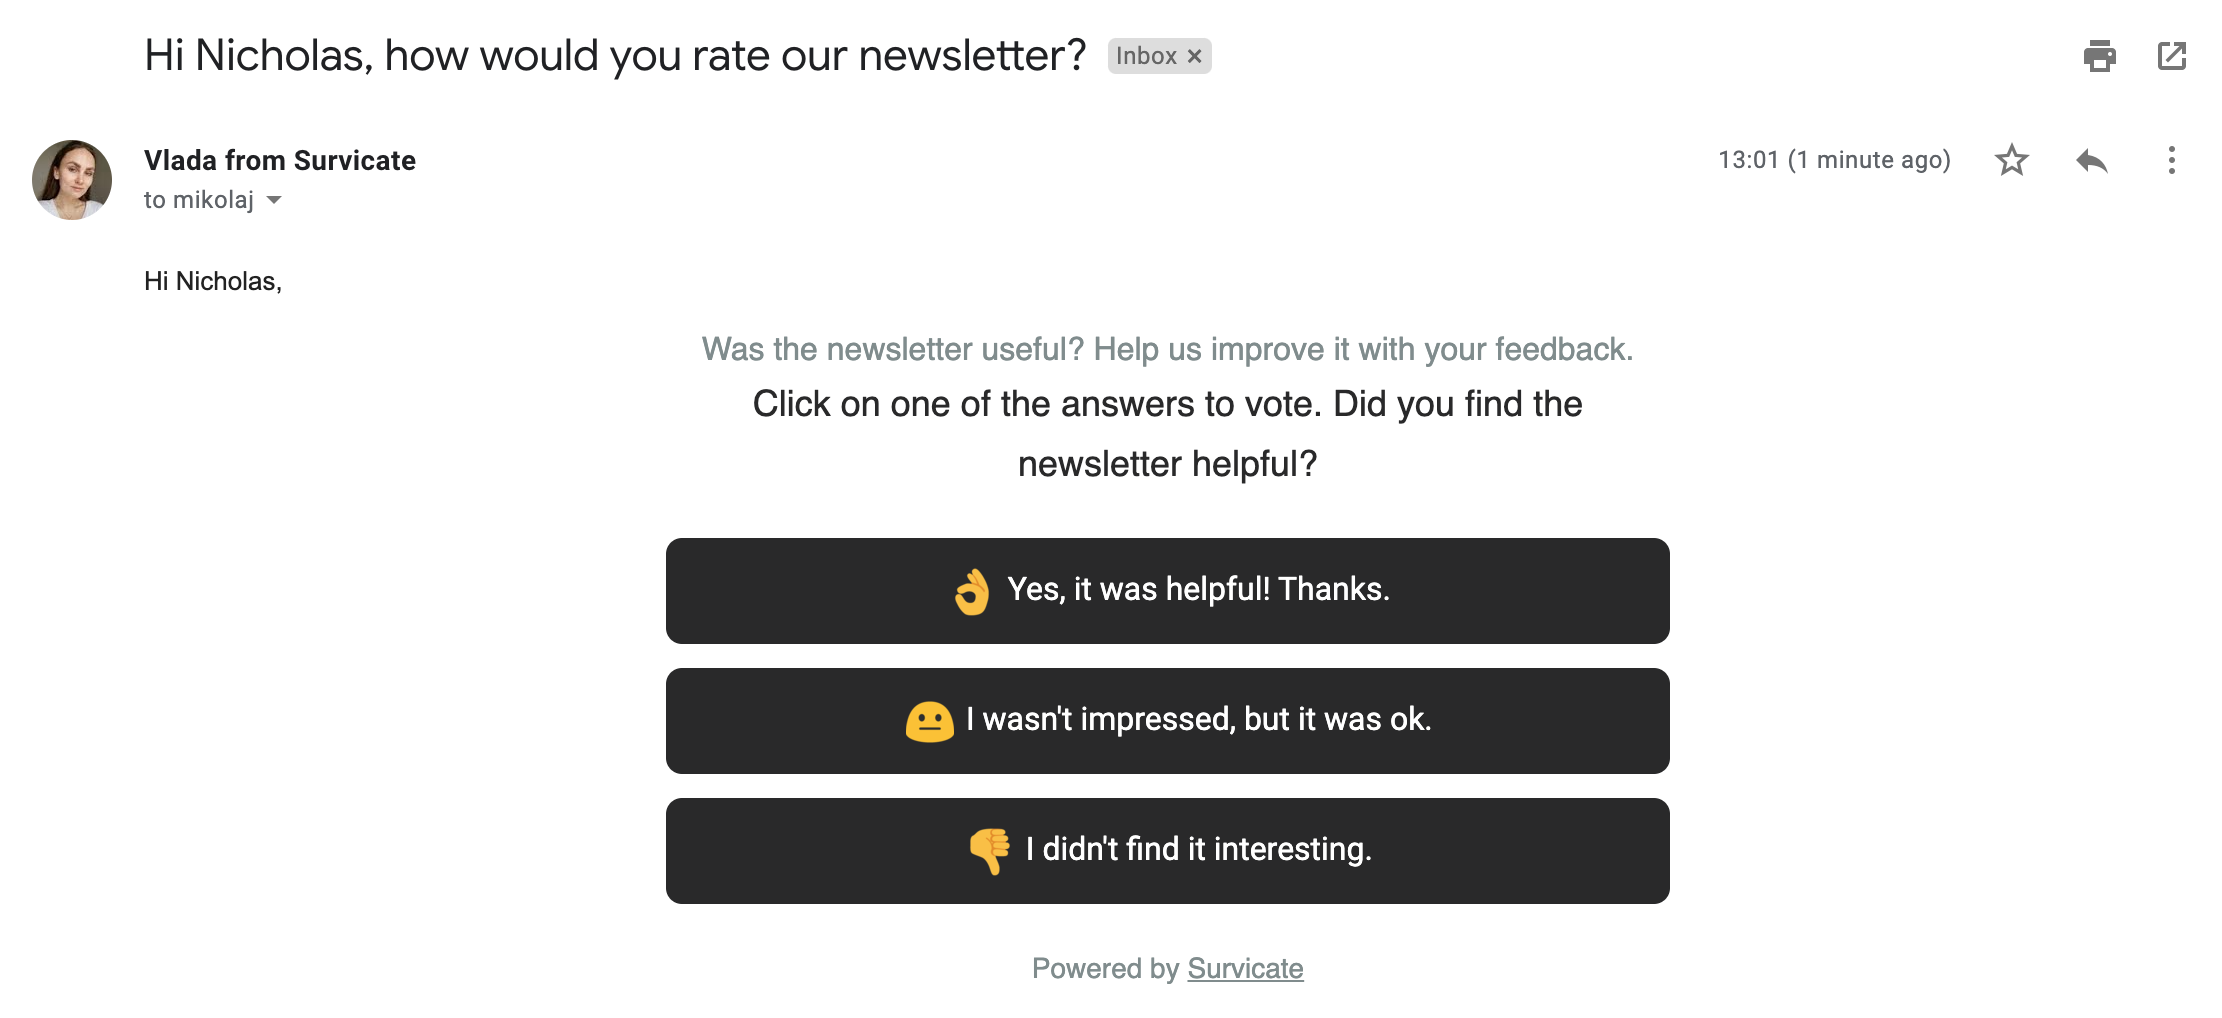 how would you rate our newsletter - simply survey question